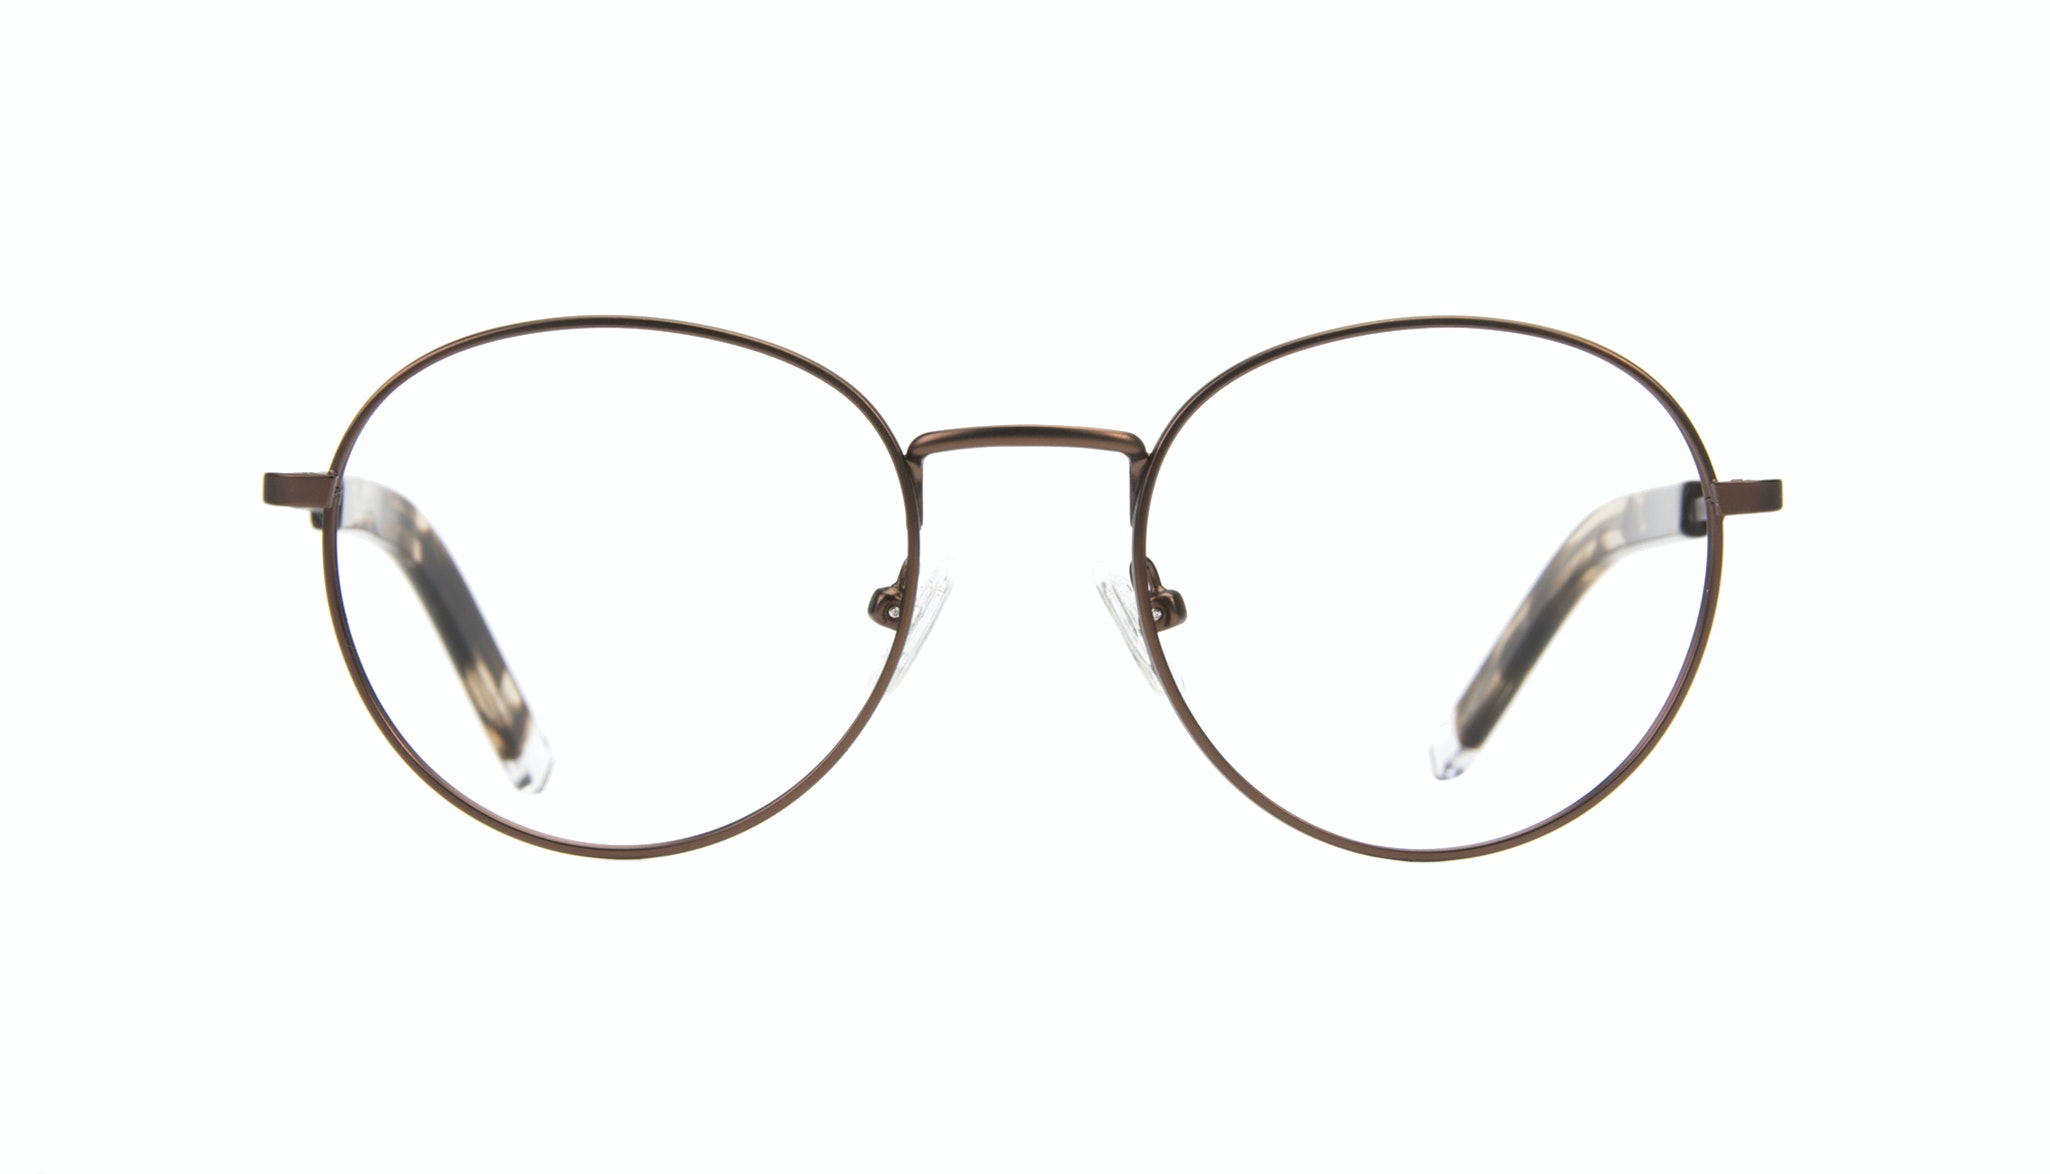 Affordable Fashion Glasses Round Eyeglasses Men Lean Mud Front